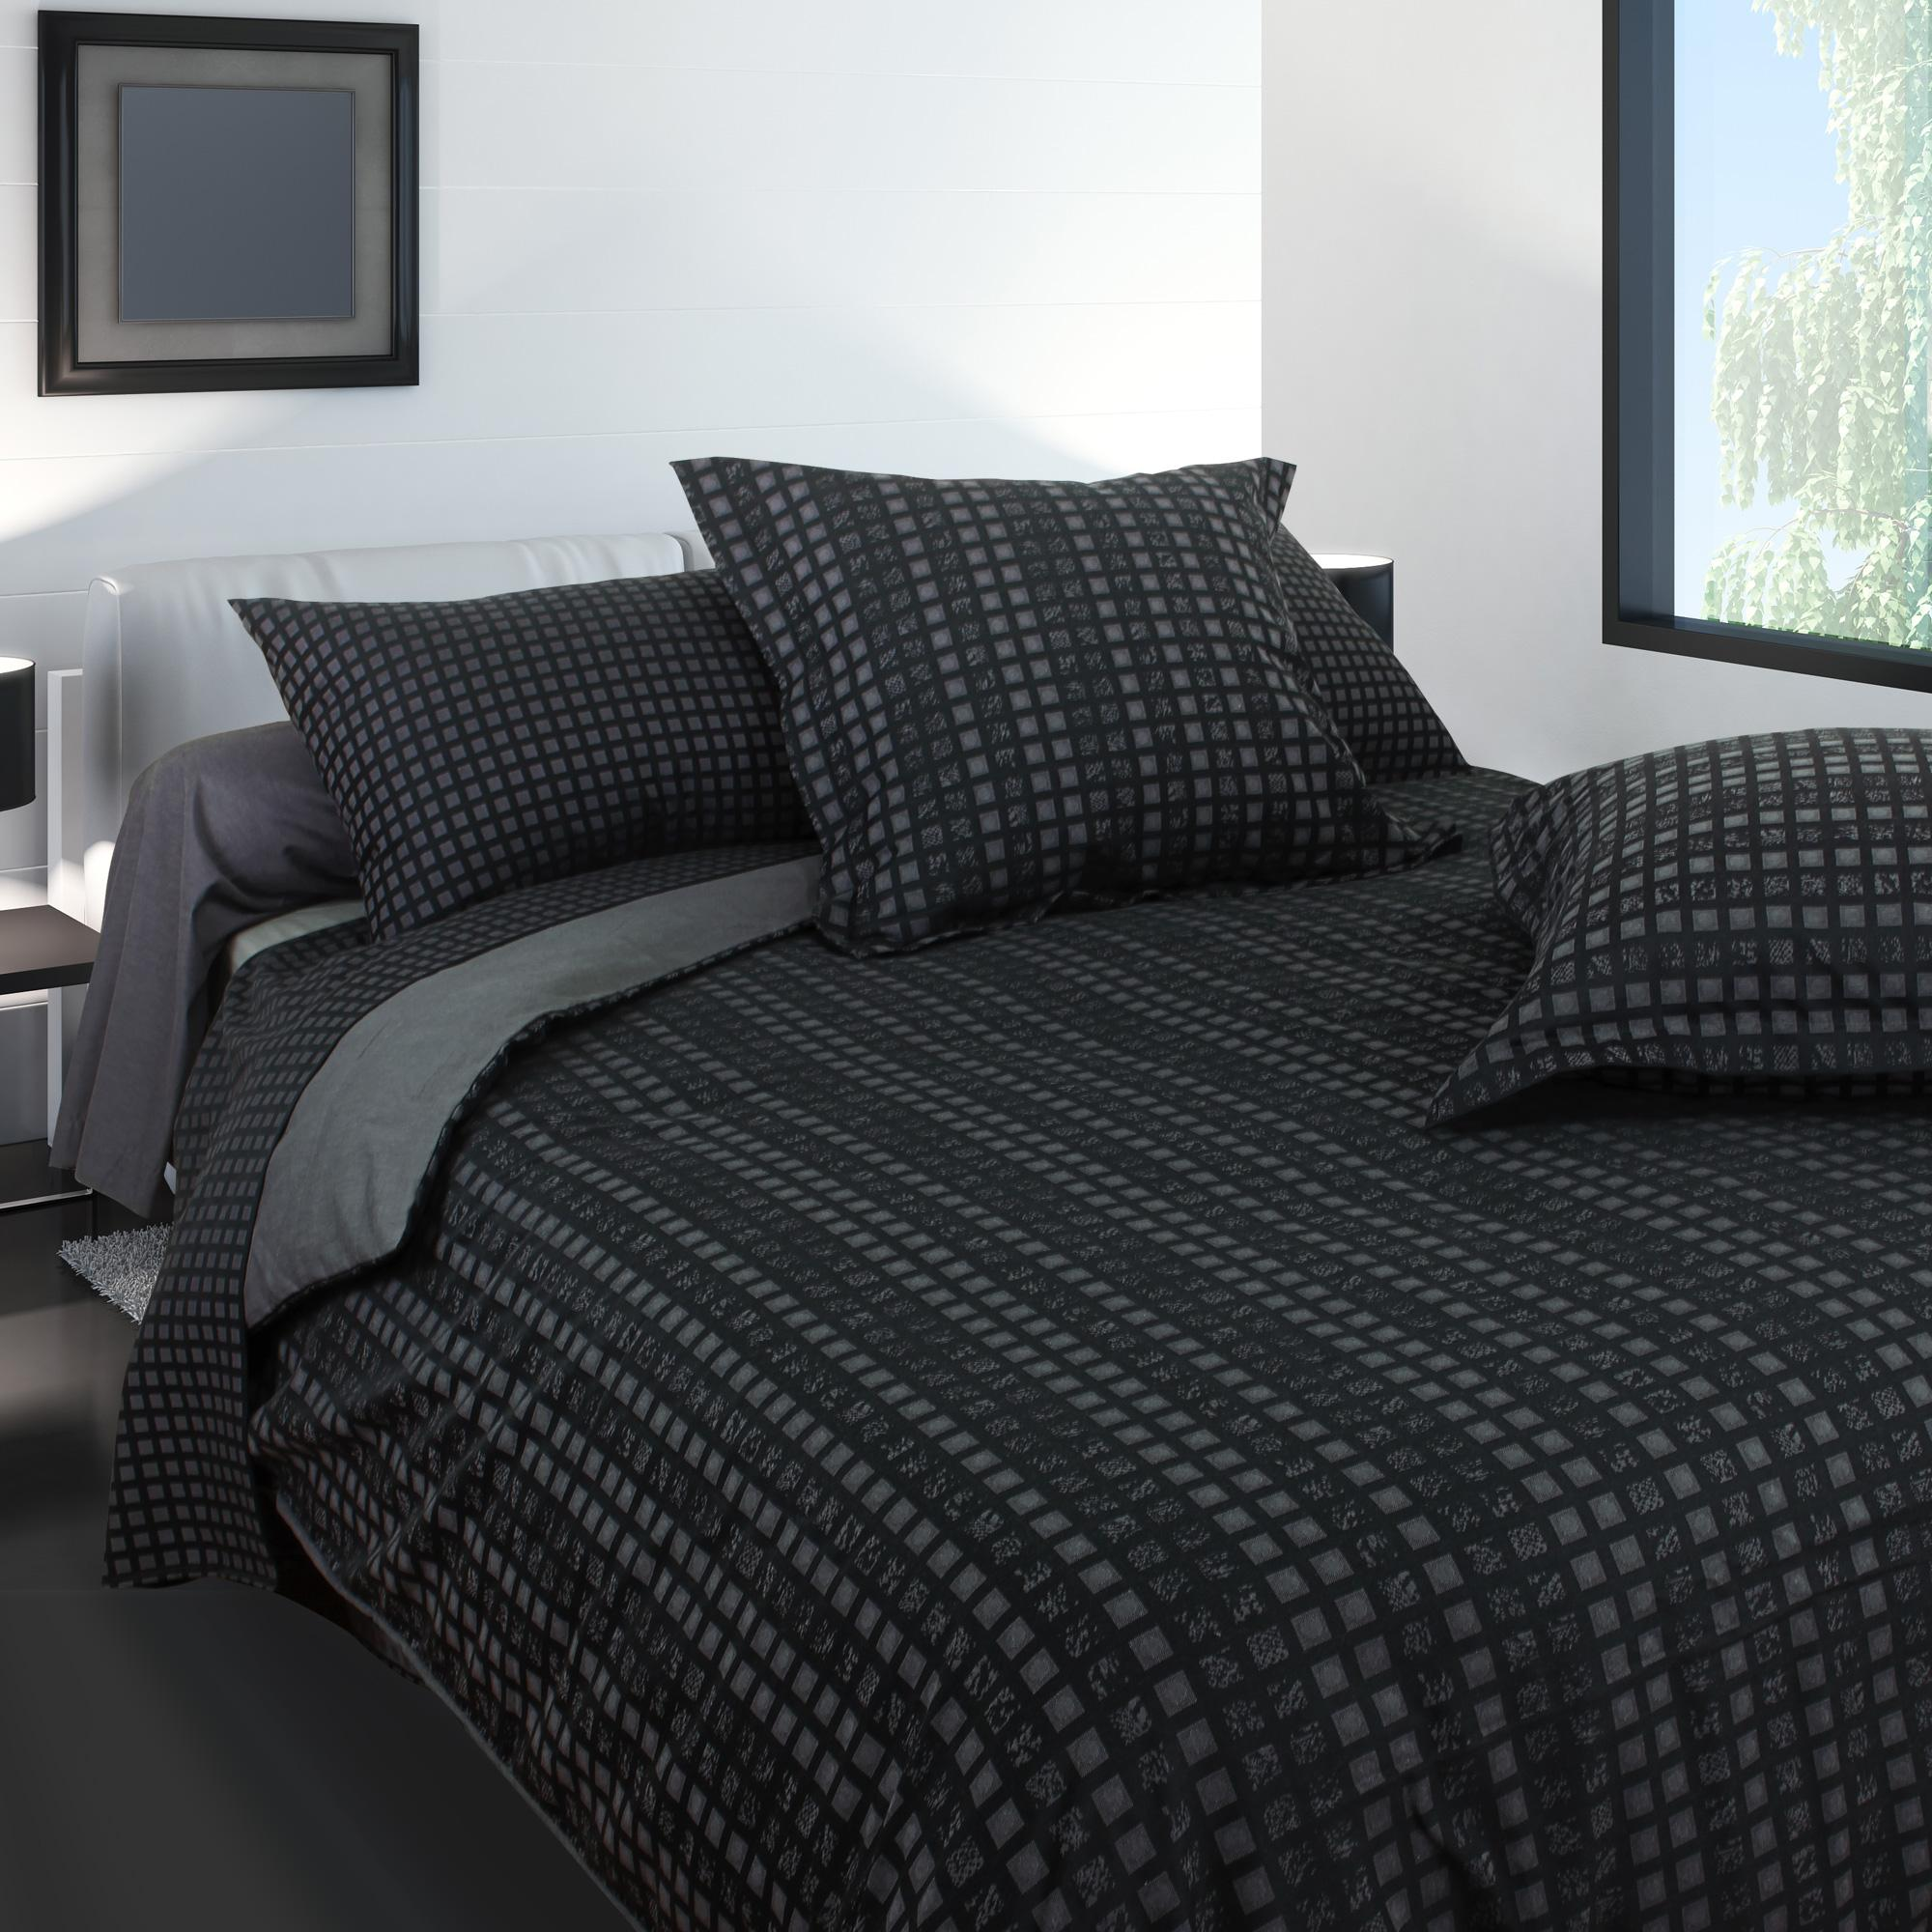 drap plat 240x310 satin de coton trocadero gris anthracite ebay. Black Bedroom Furniture Sets. Home Design Ideas